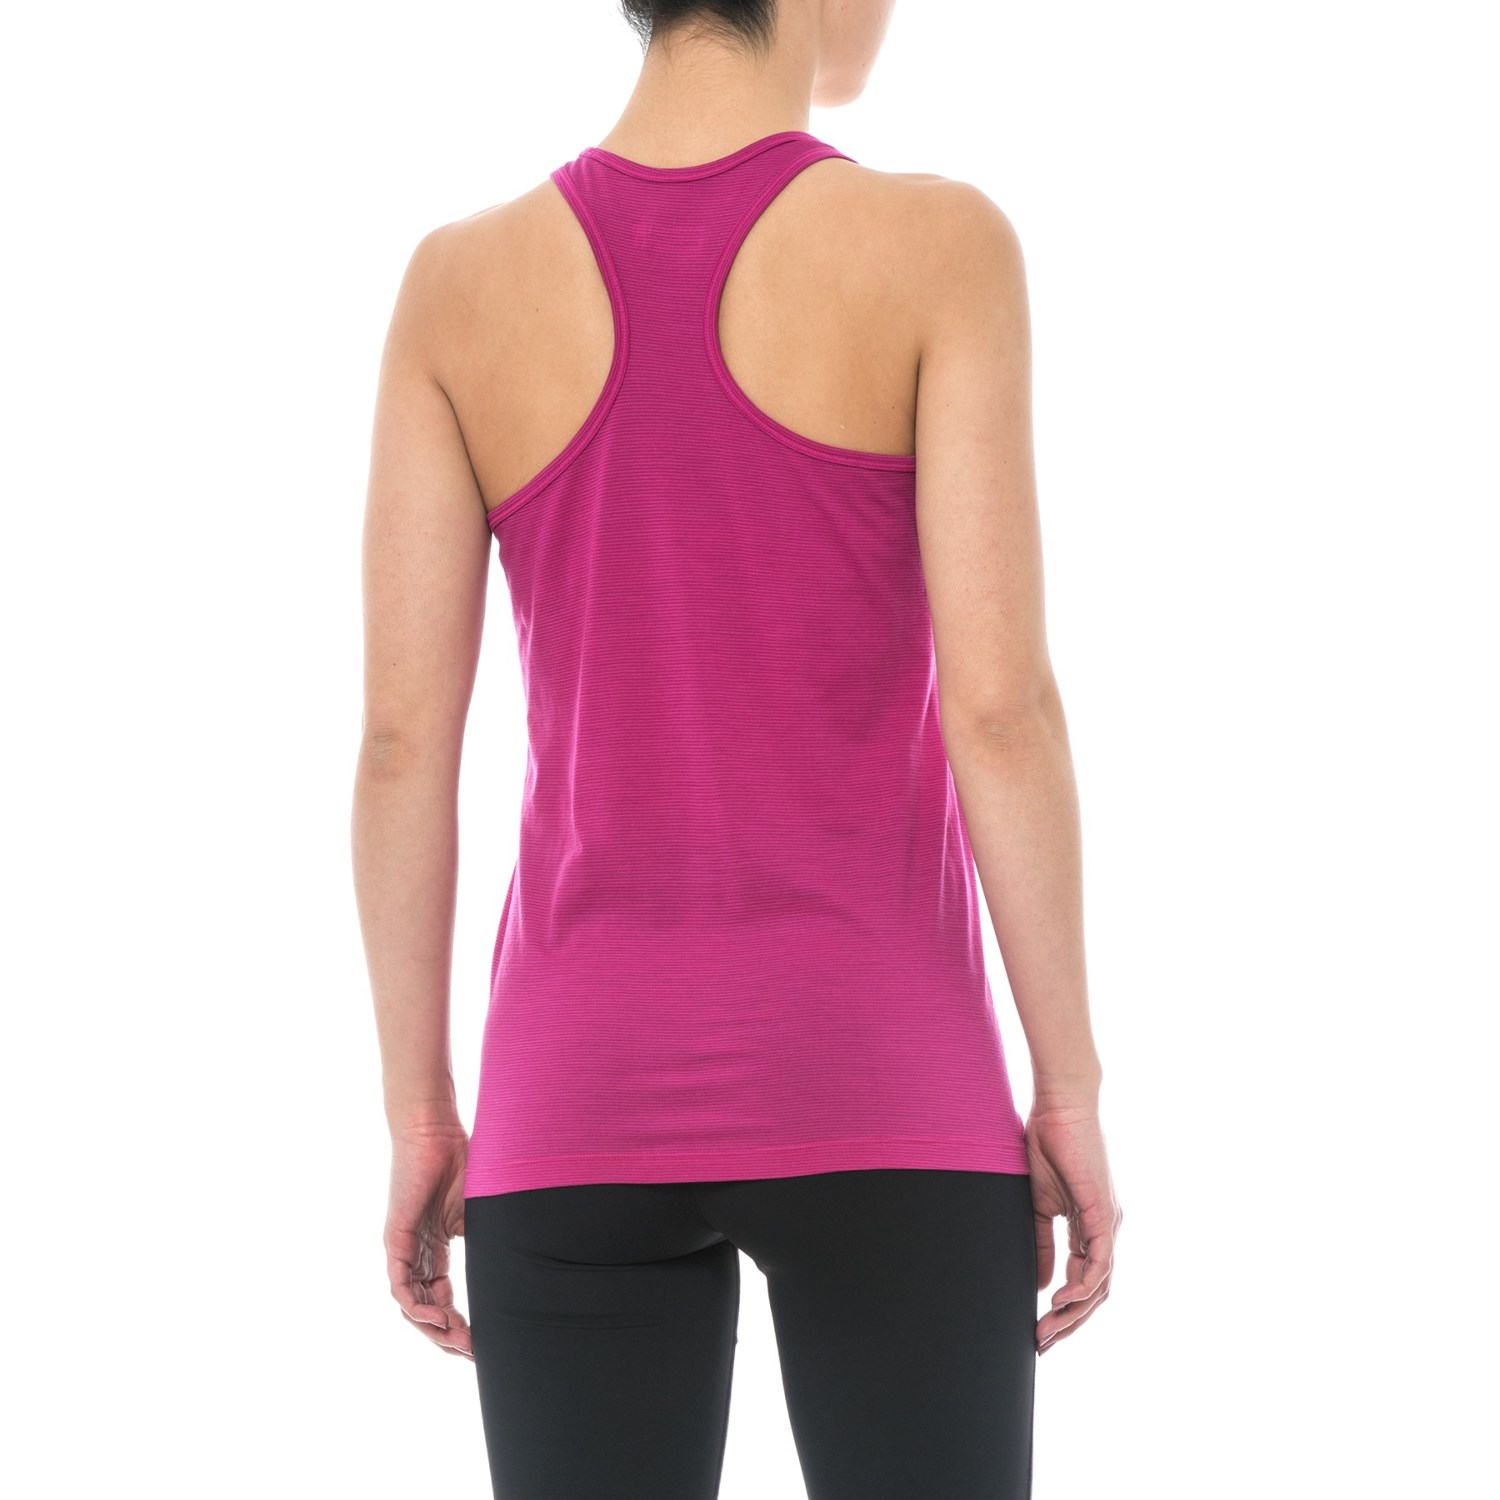 Womens Active Wool Tank Top Base Layer Skiny Fashionable Sale Online RVQfy35